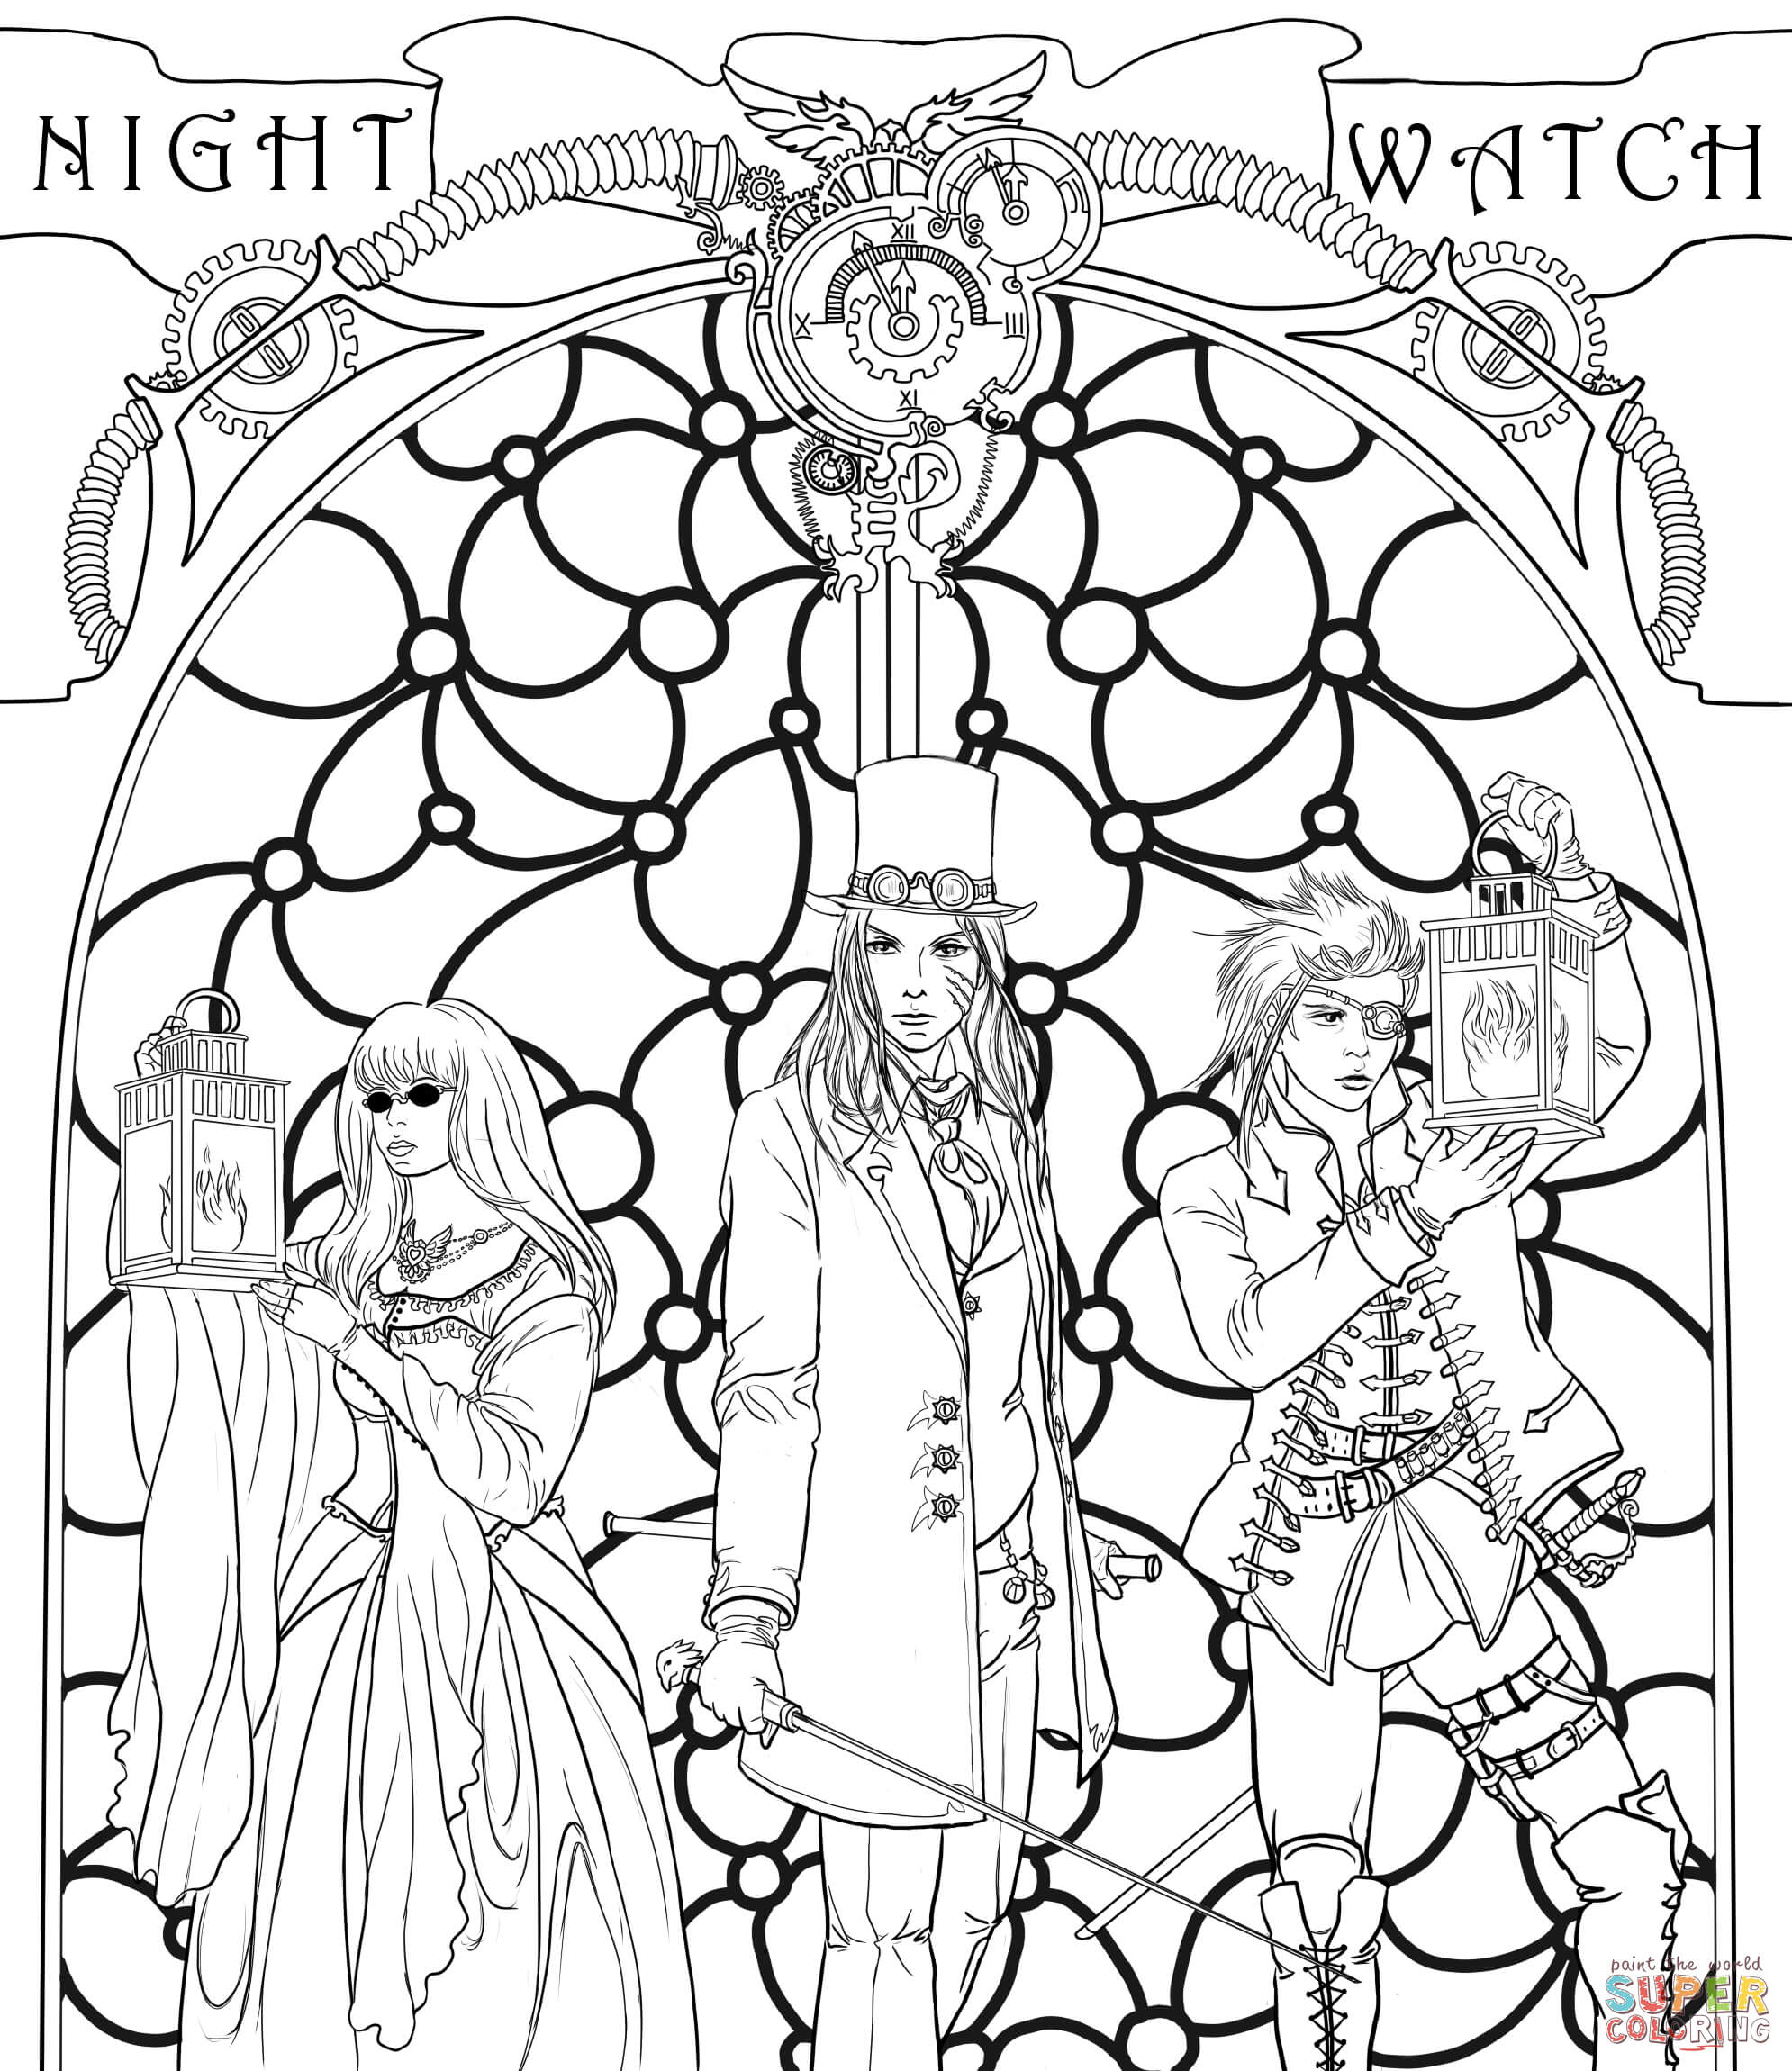 Steampunk Night Watch Crew Coloring Page